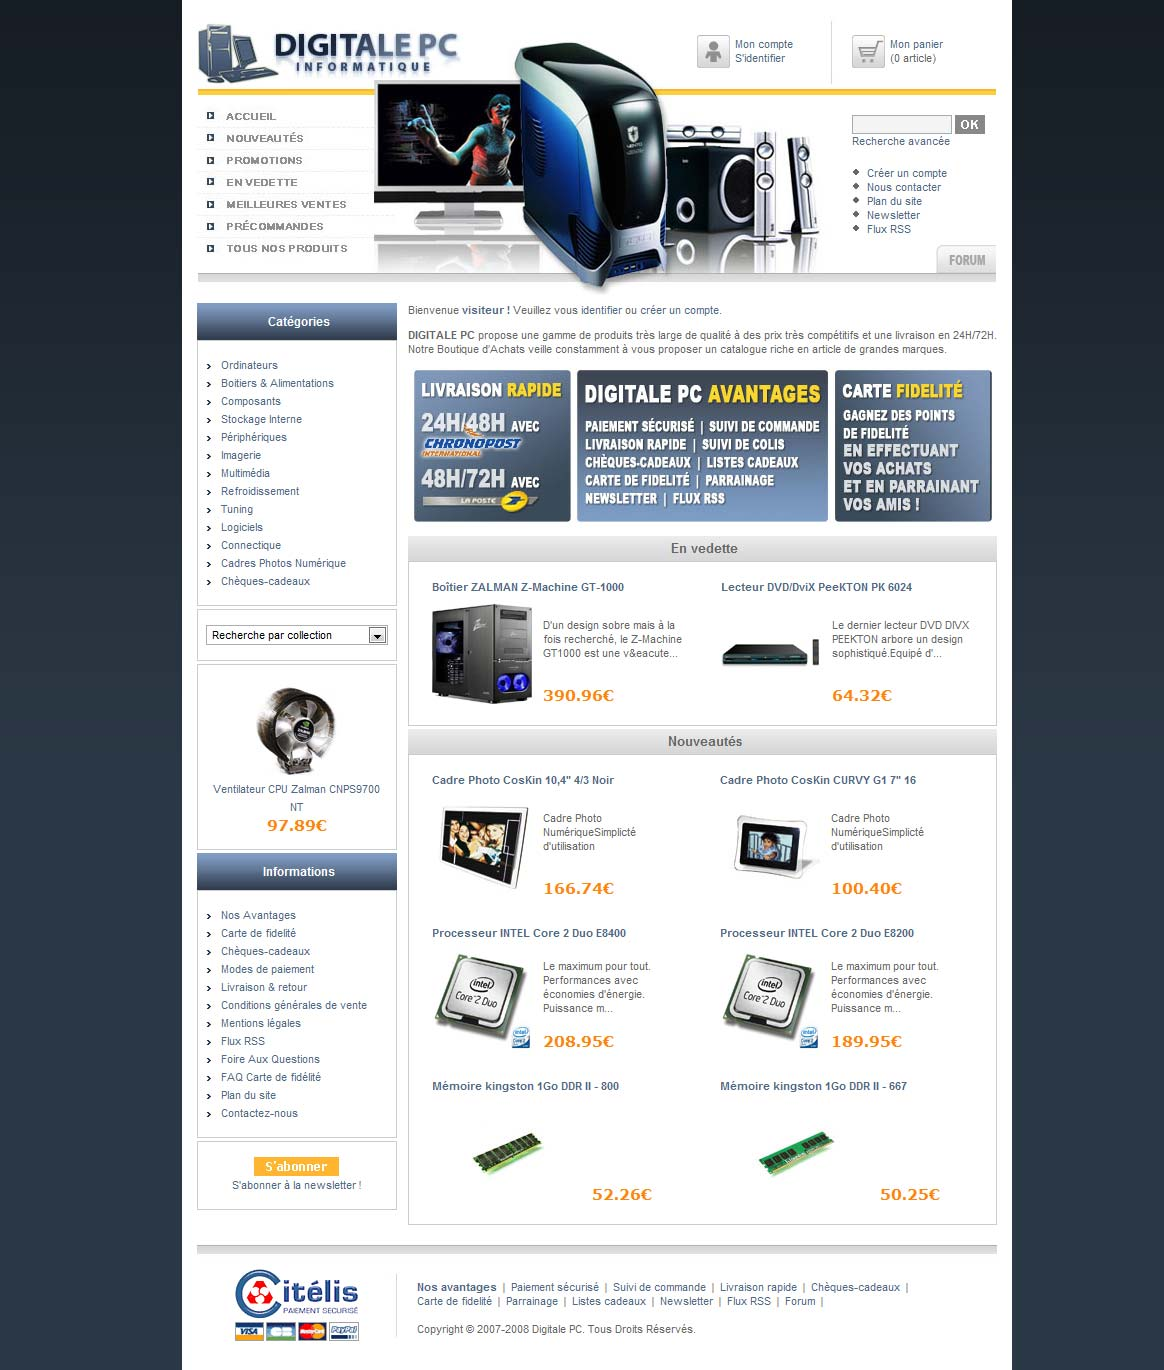 Digitale PC Website shop